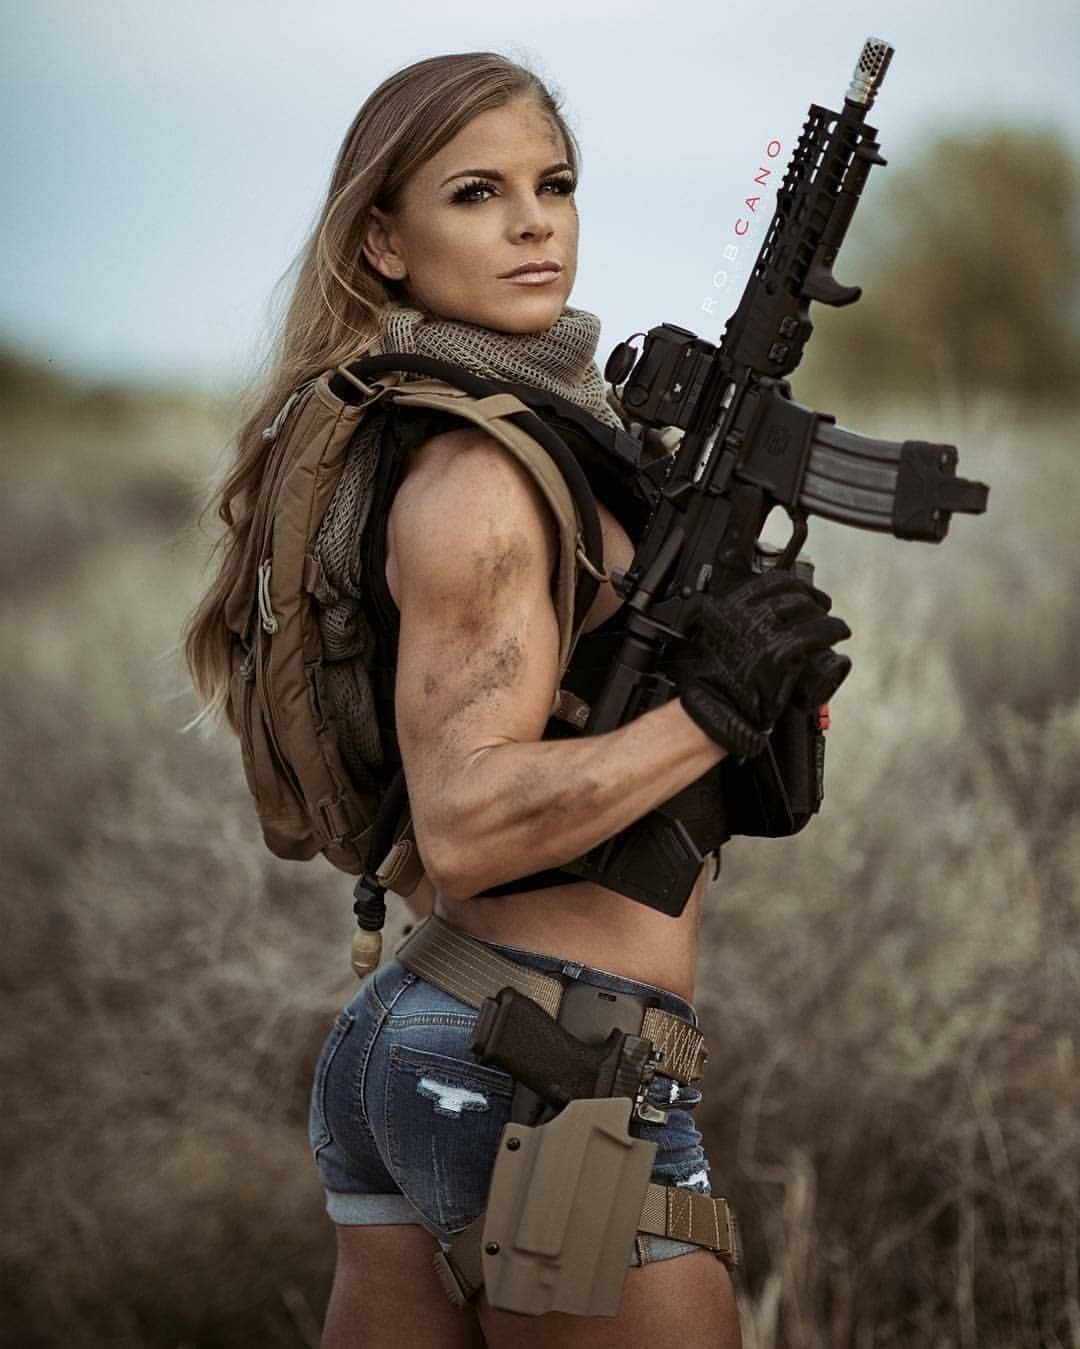 Military girl • Women in the military • Army girl • Women with guns • Armed girls • Tactical Babes • Girls with weapons